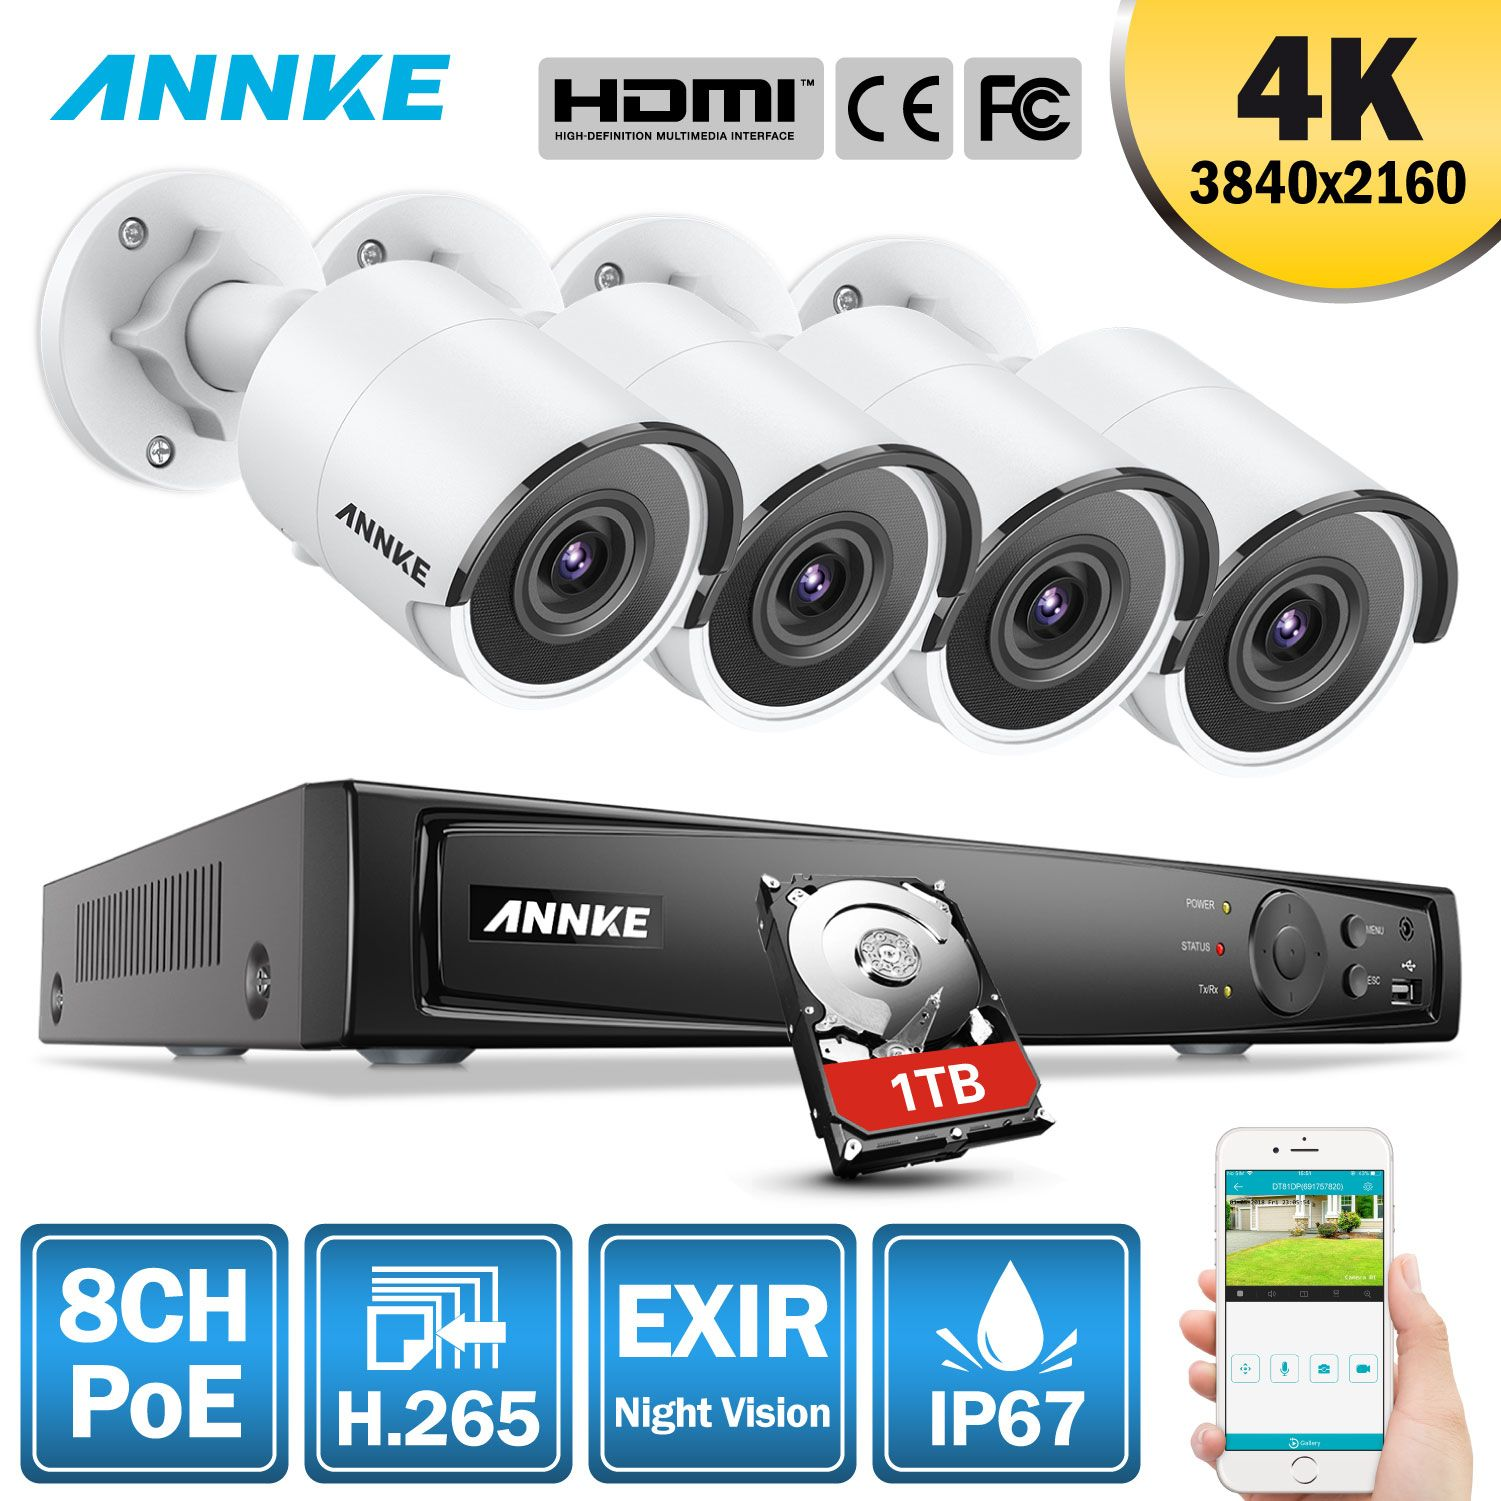 ANNKE 8CH 4K Ultra HD POE Netzwerk Video Security System 8MP H.265 NVR Mit 4PCS 8MP Wetterfeste IP kamera Mit 1 TB/2 TB/4 TB HDD